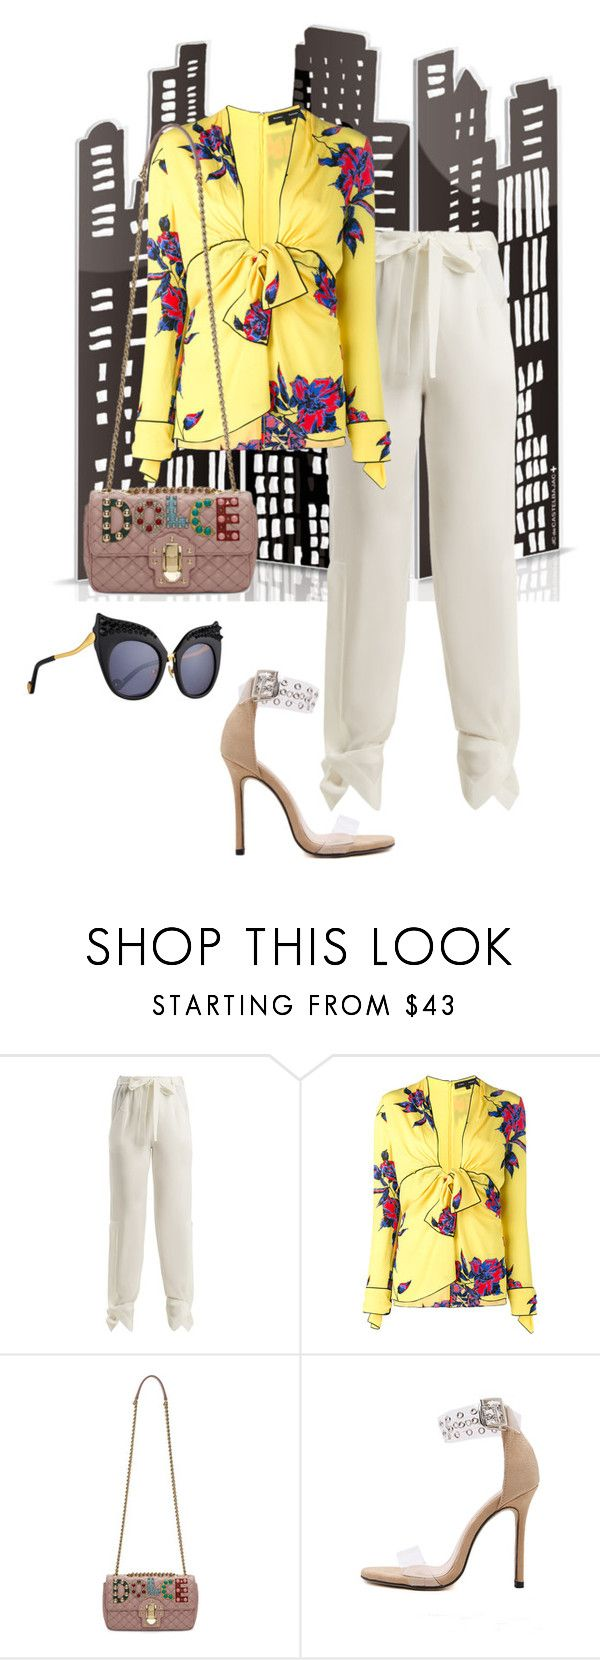 """Untitled #354"" by ilich-moreno ❤ liked on Polyvore featuring Roland Mouret, Proenza Schouler, Dolce&Gabbana, WithChic and Anna-Karin Karlsson"